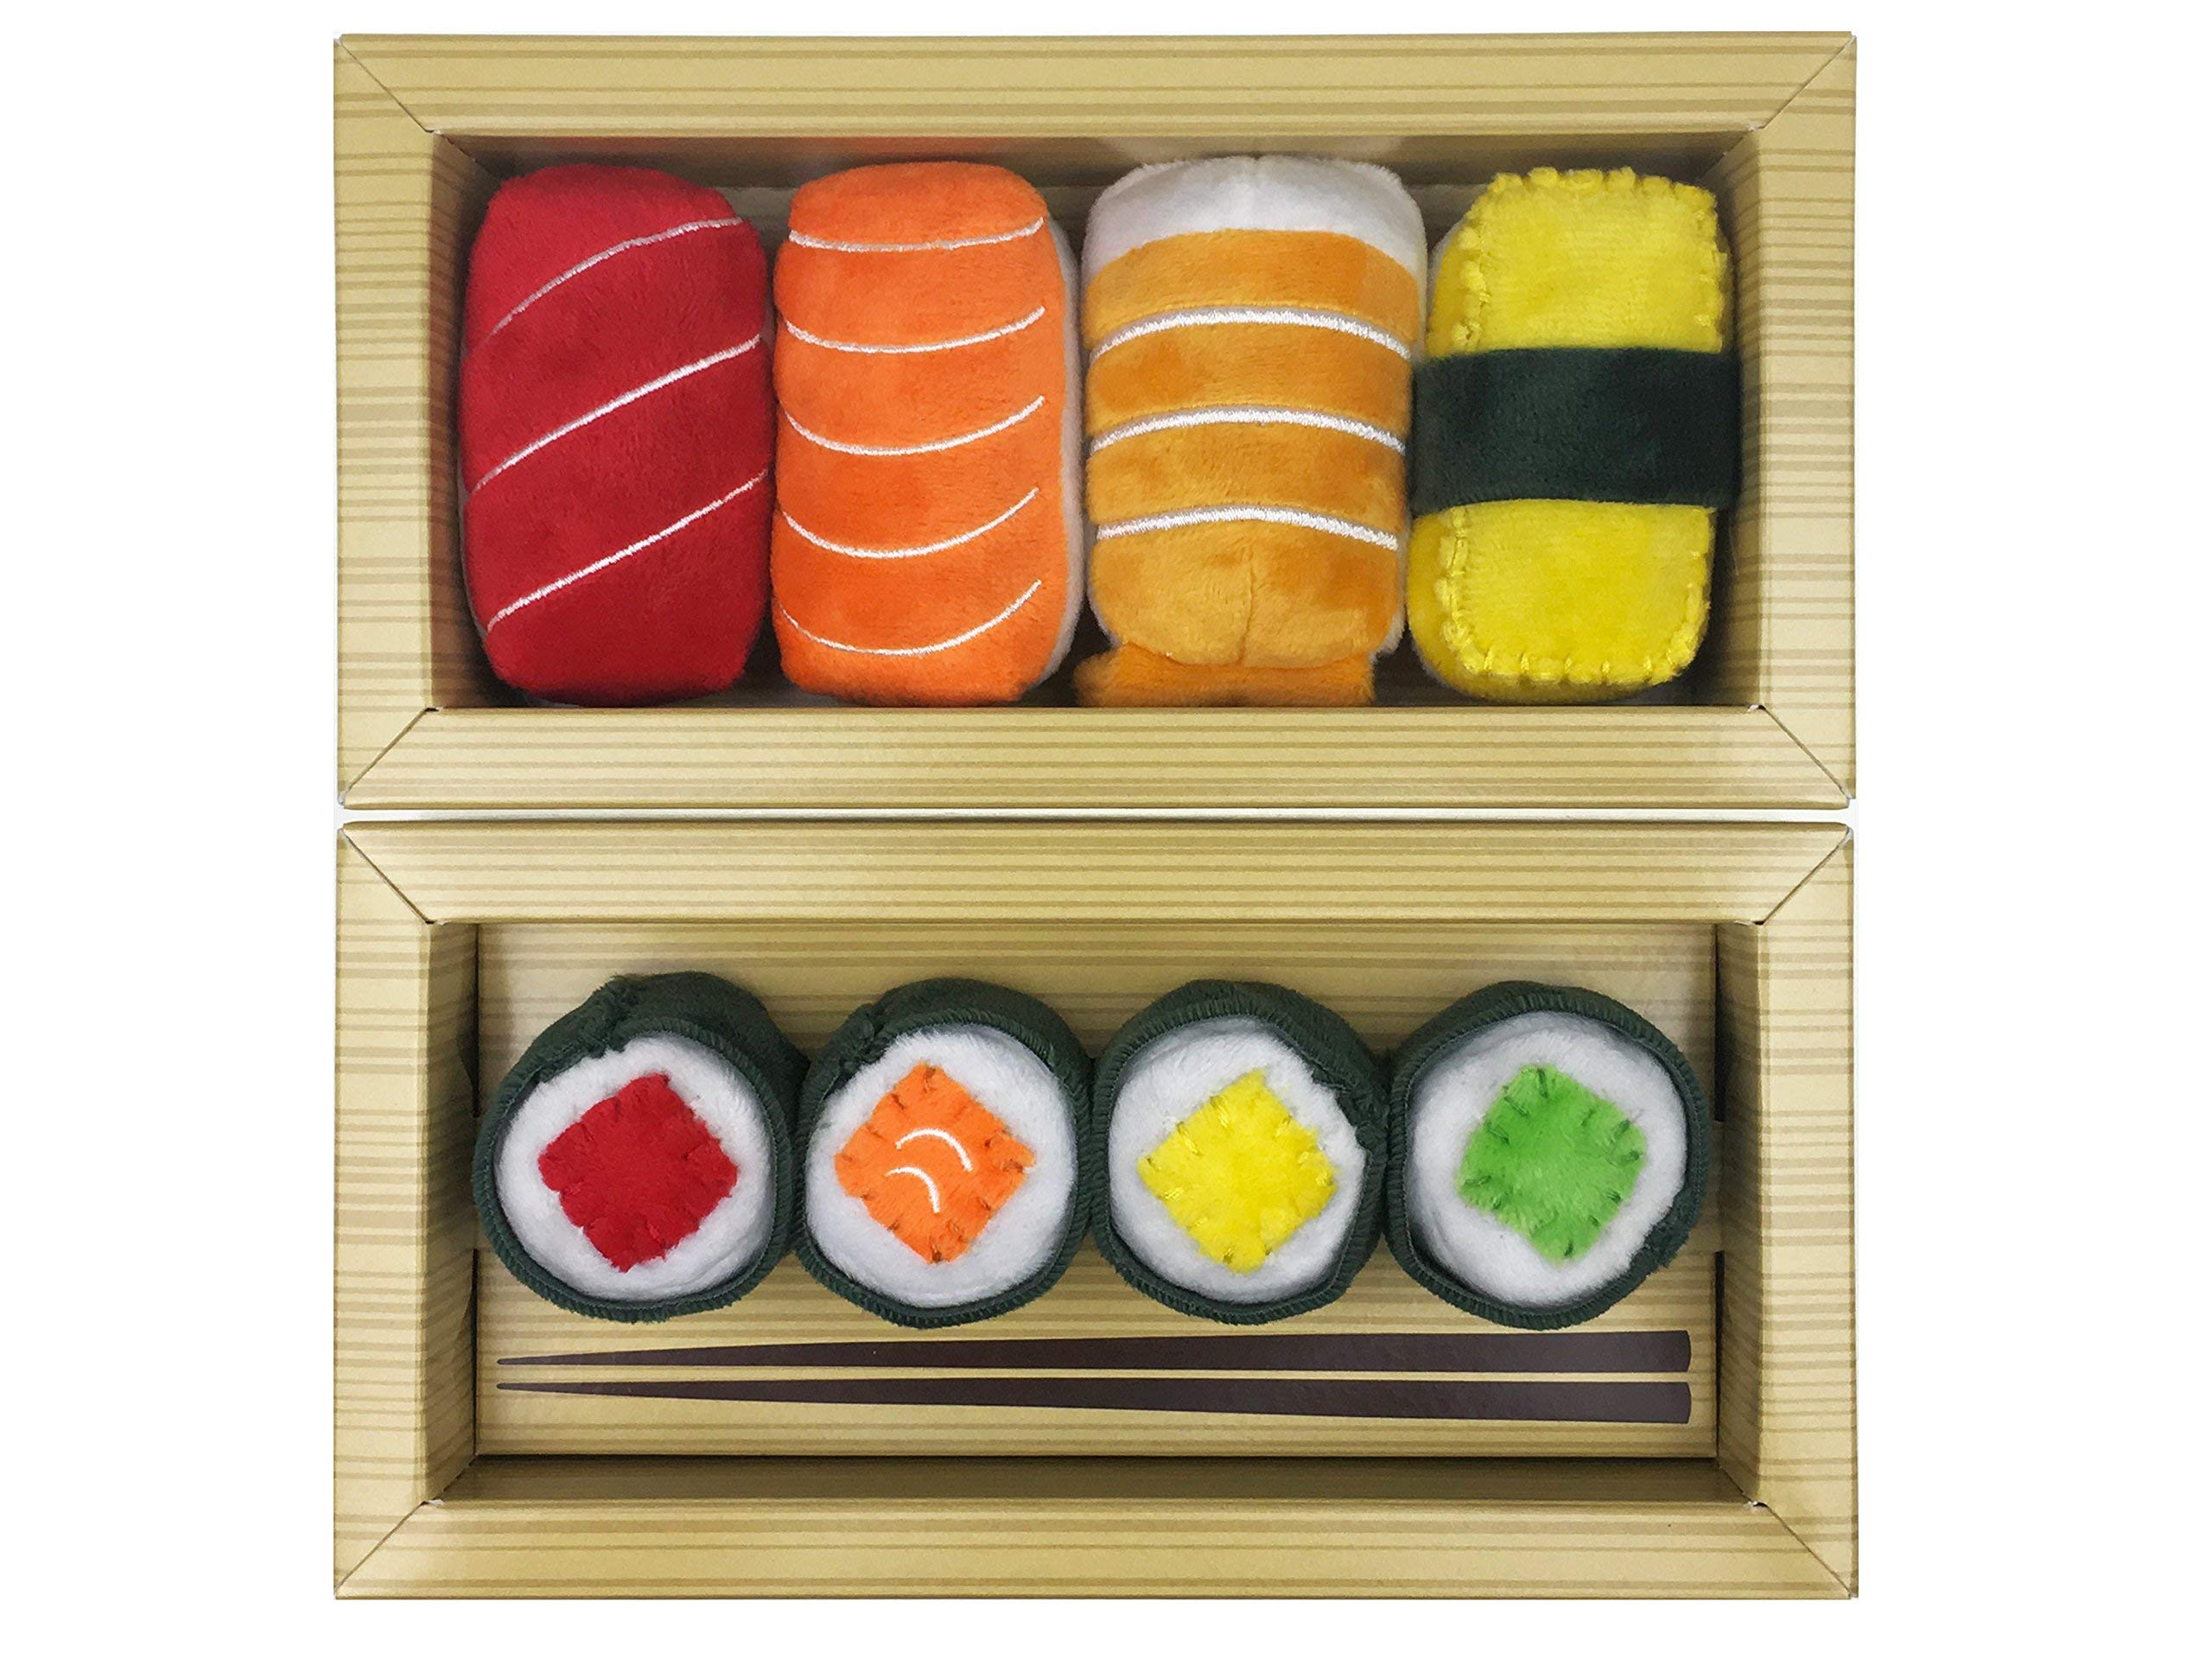 munchiecat Sushi Toys for Cats, Kittens Catnip Toy Crinkle Paper Bells Rattle 8pc Set Cat Lover Gift Idea for Women, Men in Bento Style Box Packaging Maki Nigiri by munchiecat